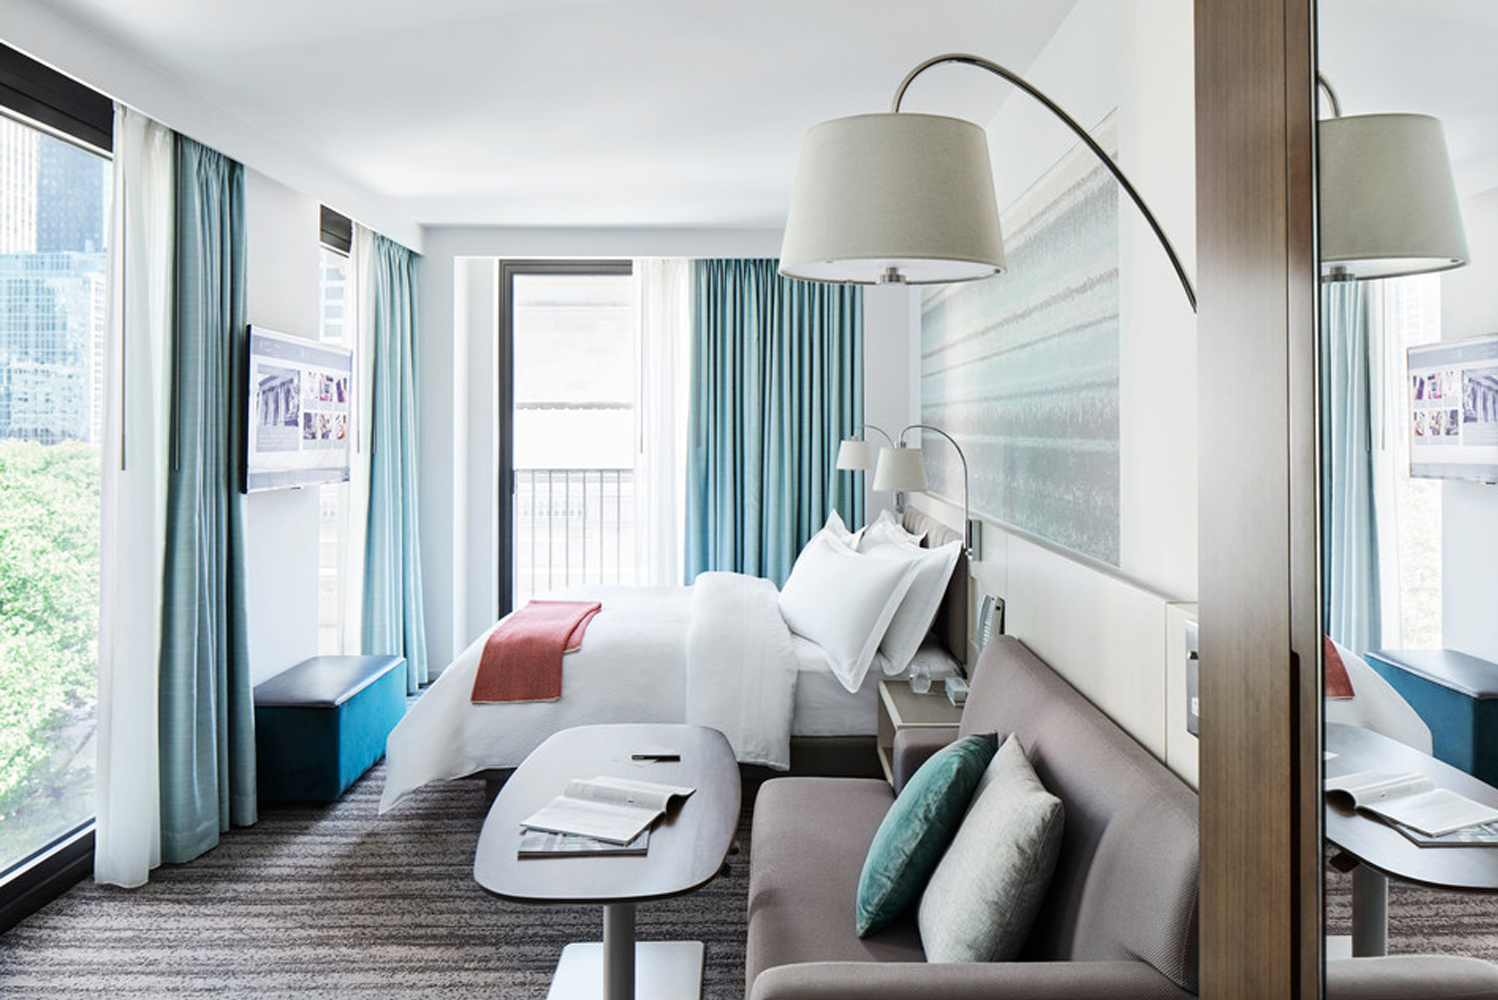 Park Terrace Hotel opened in New York City.